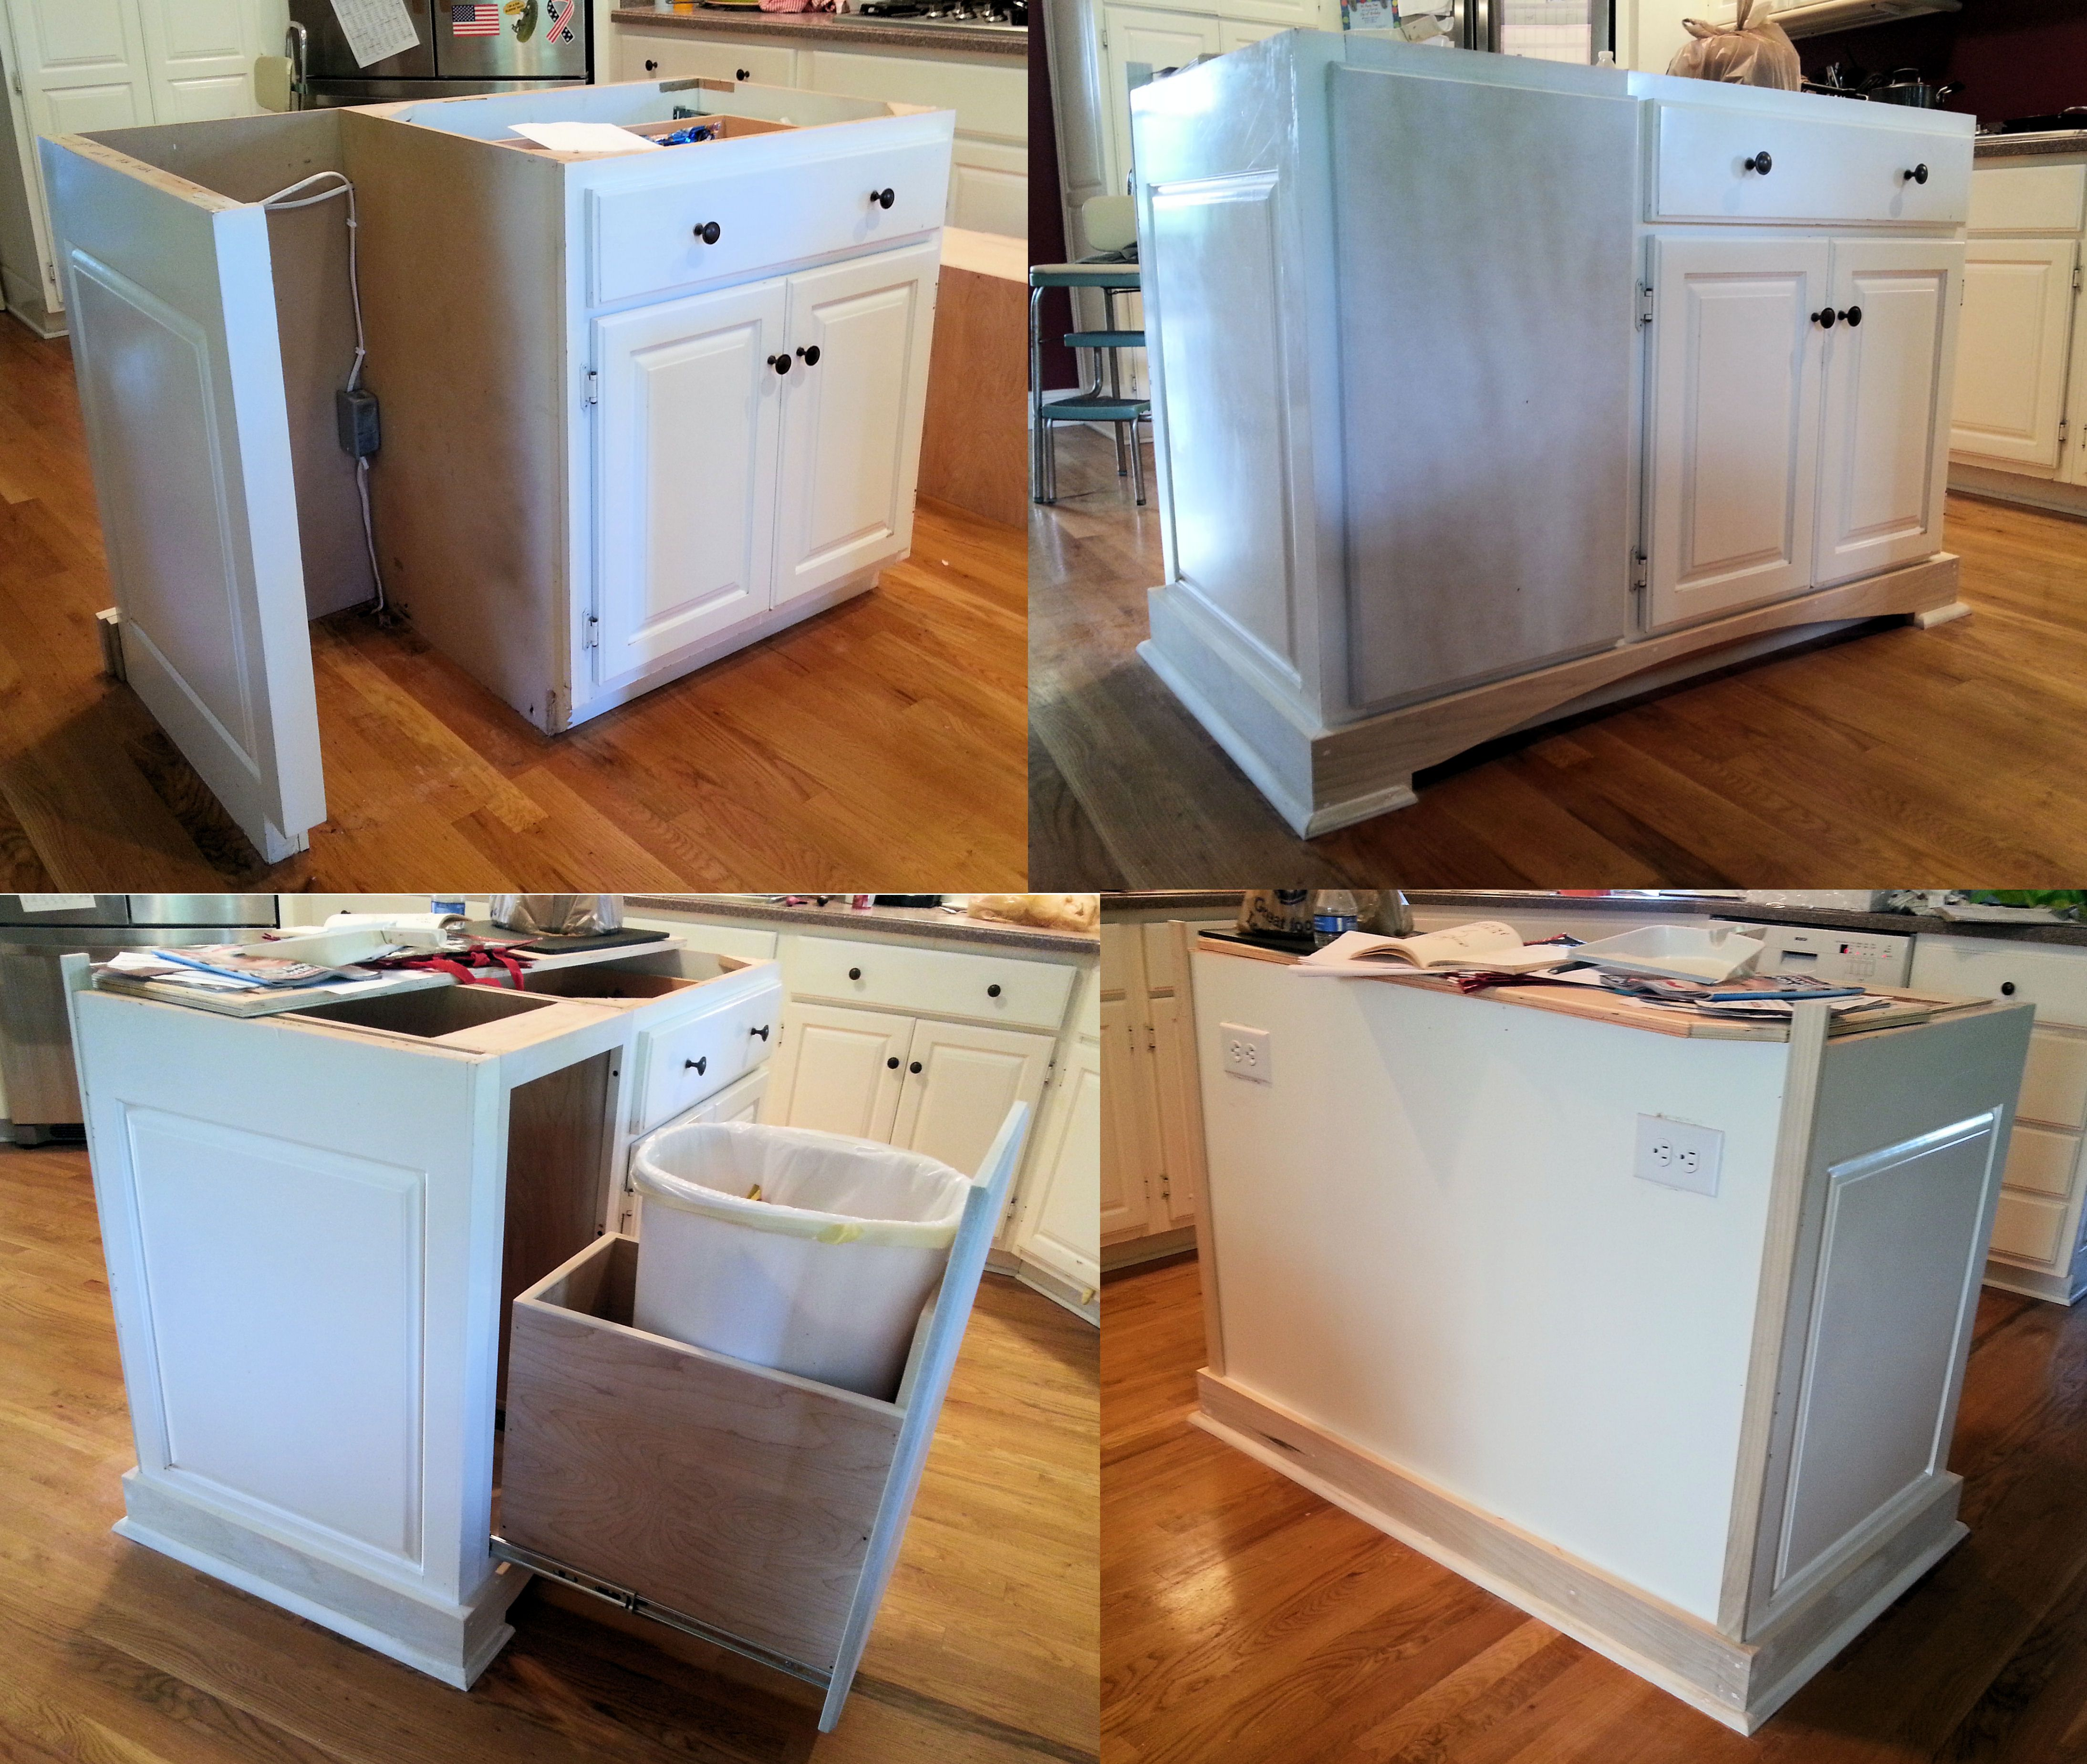 Kitchen Island Kick Plate removed existing trash compactor and replaced with trash rollout